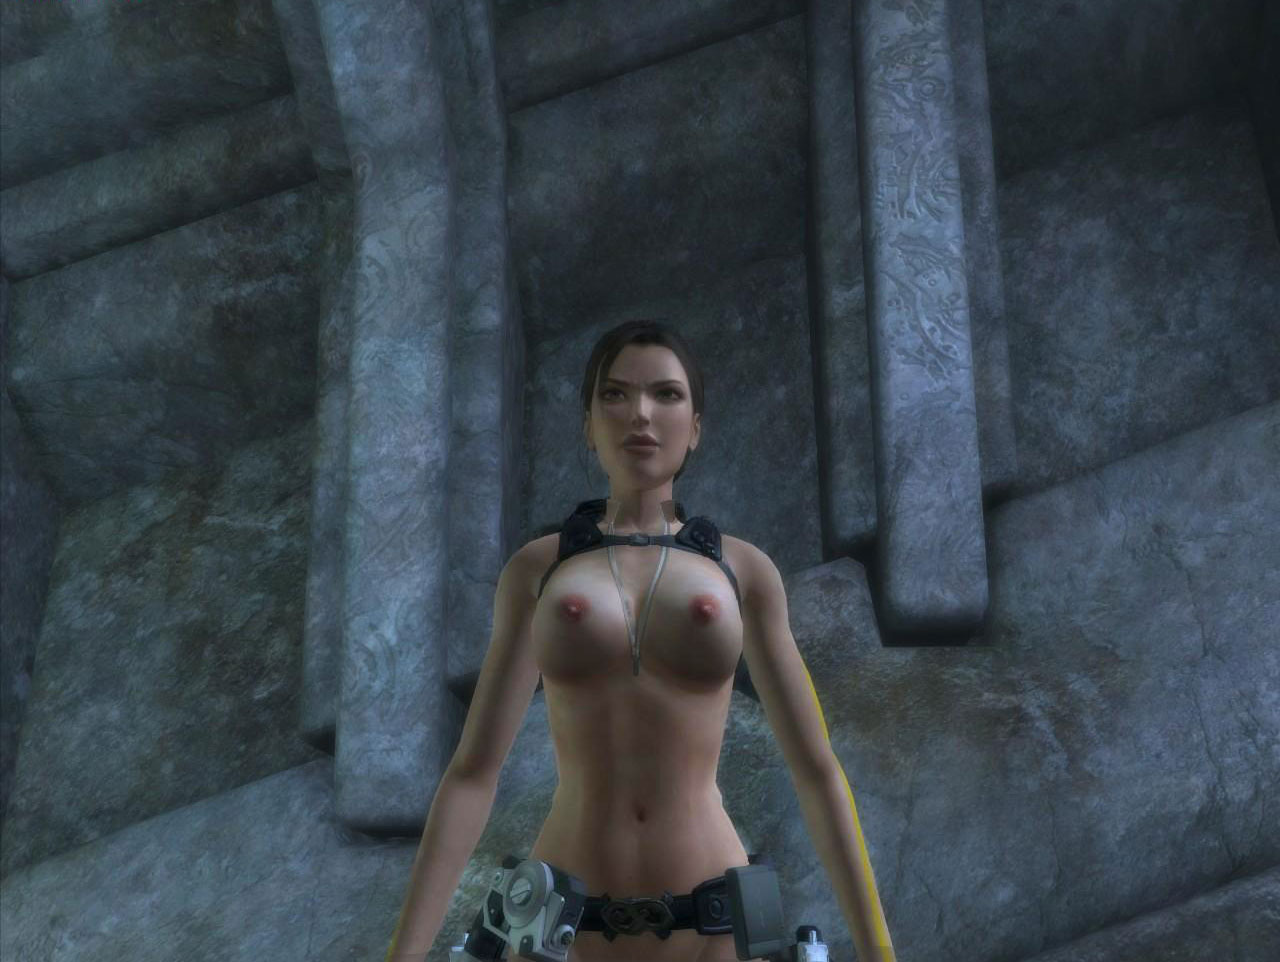 Lara croft tomb raider naked mod video exploited photos